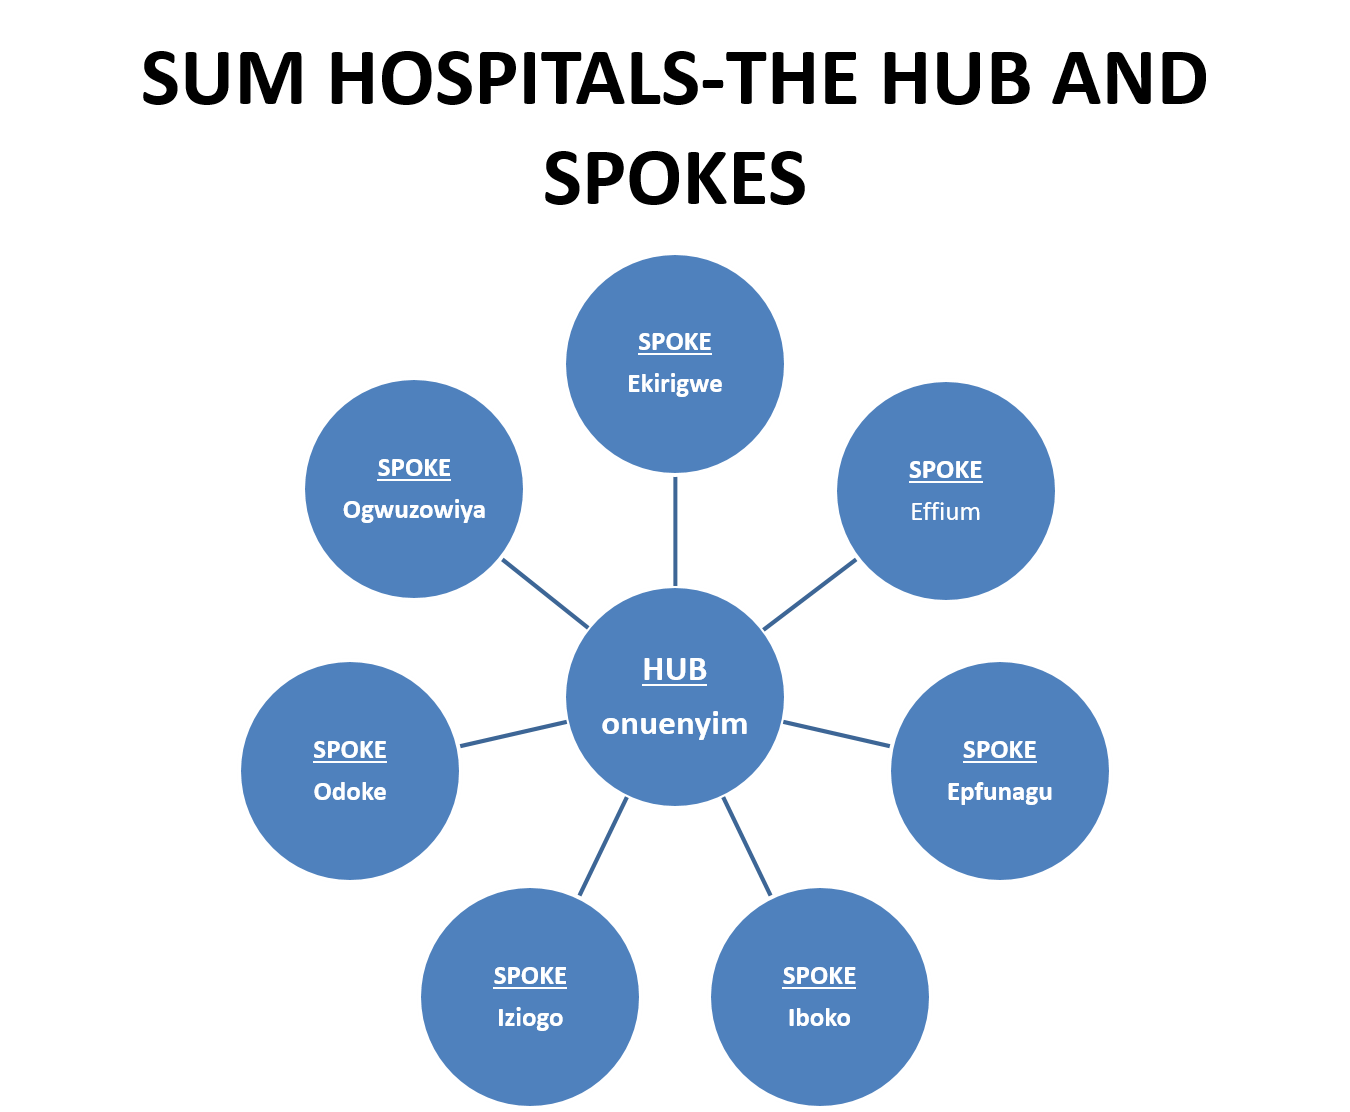 Visual of the hub and spoke system of health delivery, including the hub in the center which is where administration function is, surrounded by spokes delivering care.